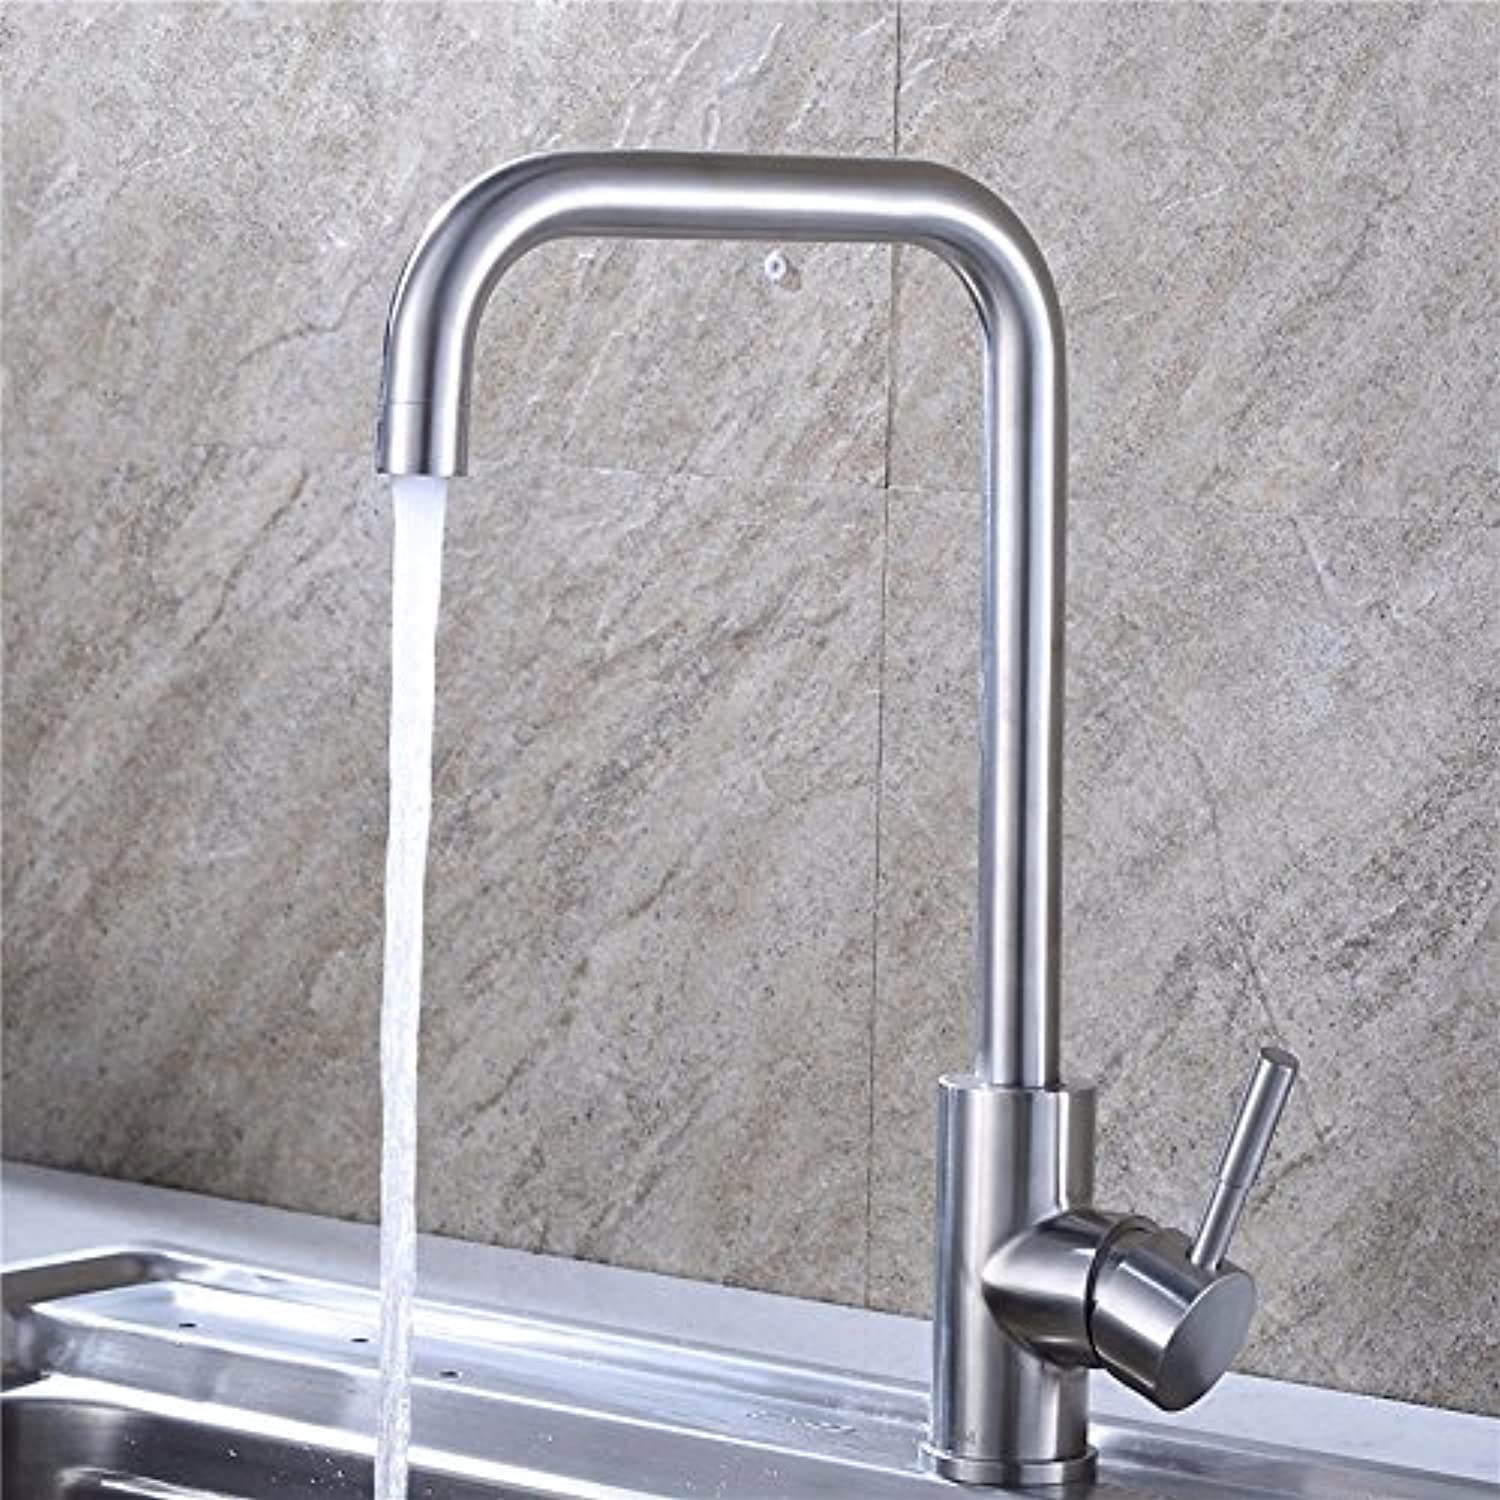 Hlluya Professional Sink Mixer Tap Kitchen Faucet Stainless steel kitchen faucet, kitchen single-seat-in-water taps, B